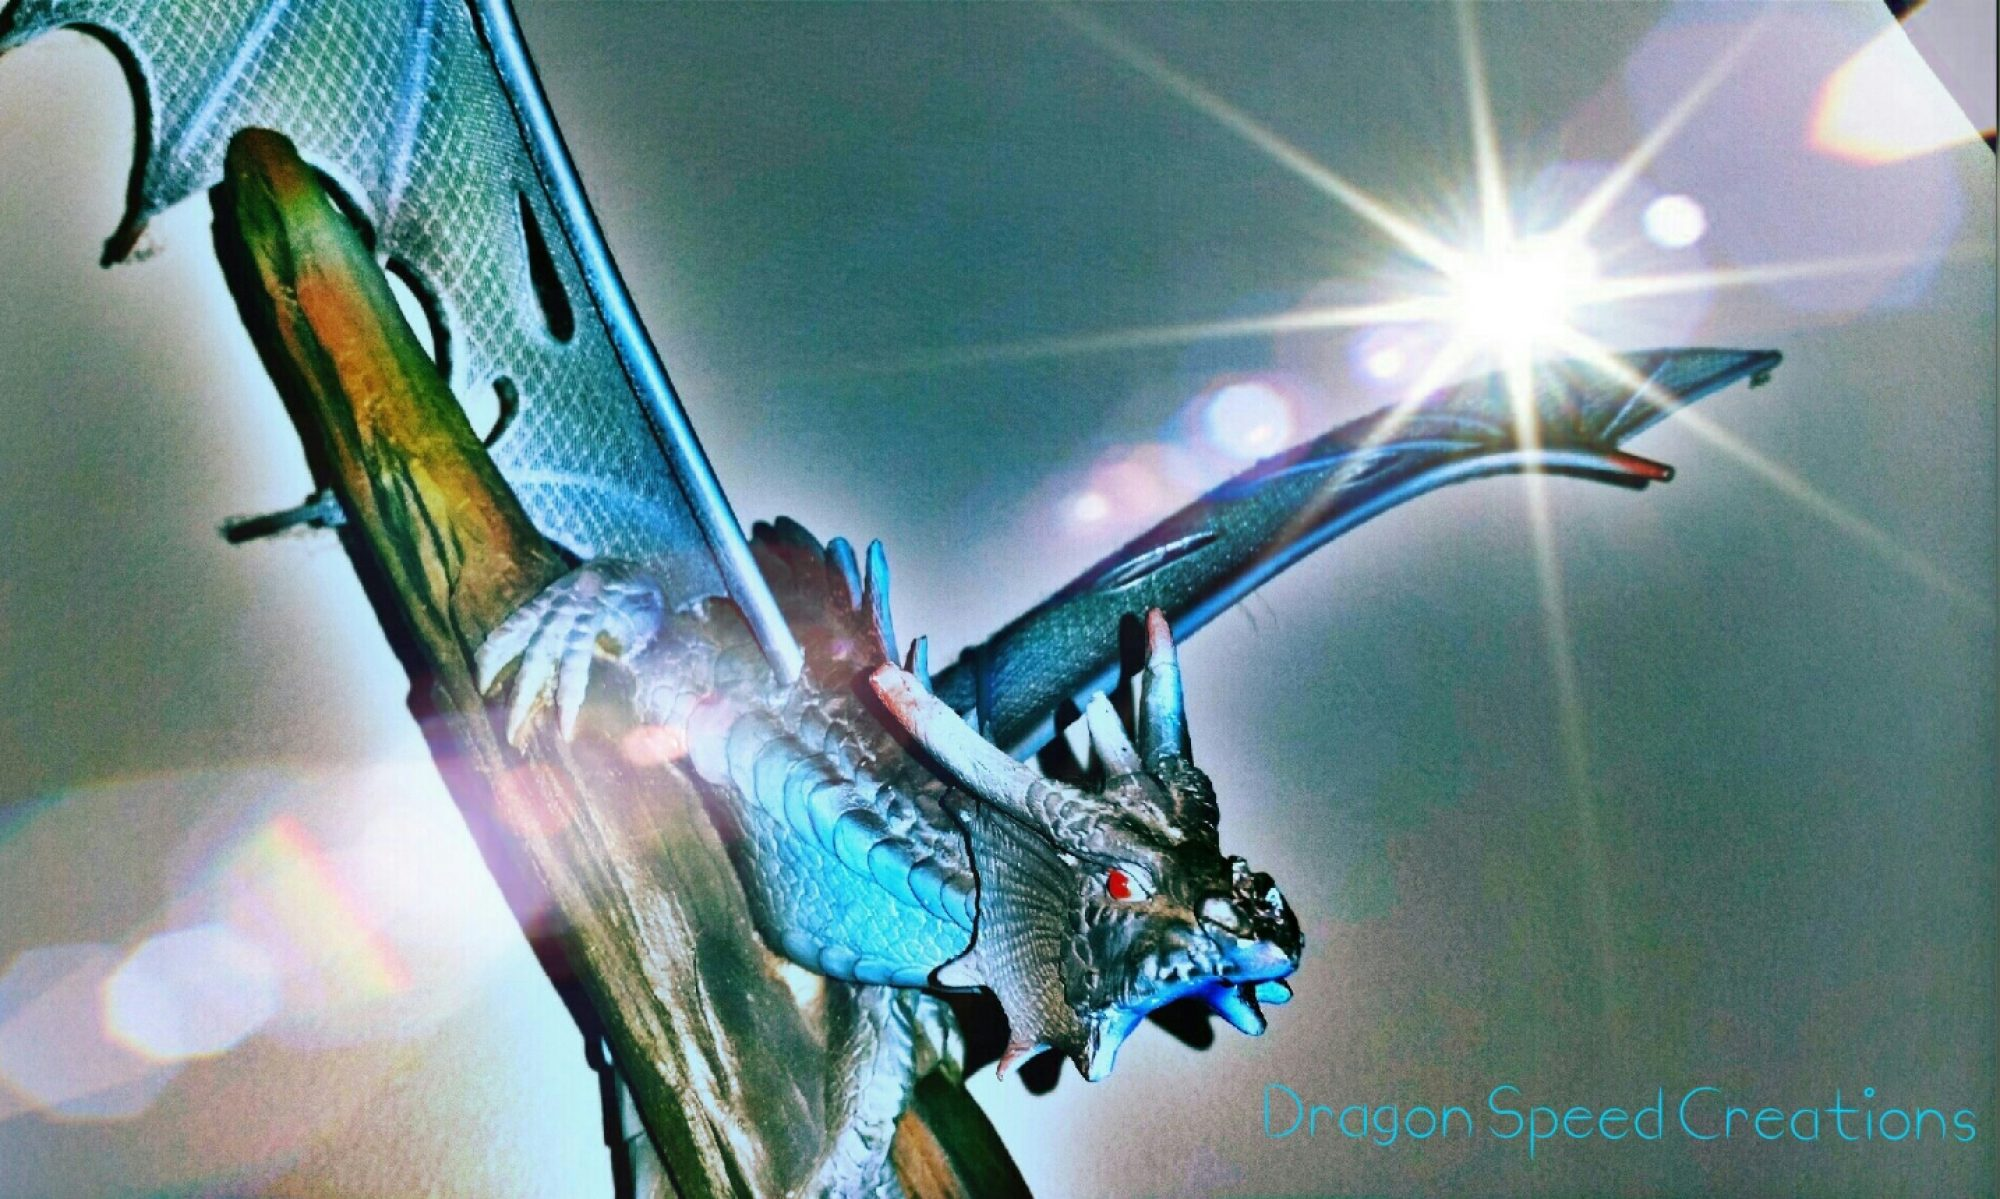 Dragon Speed Creations